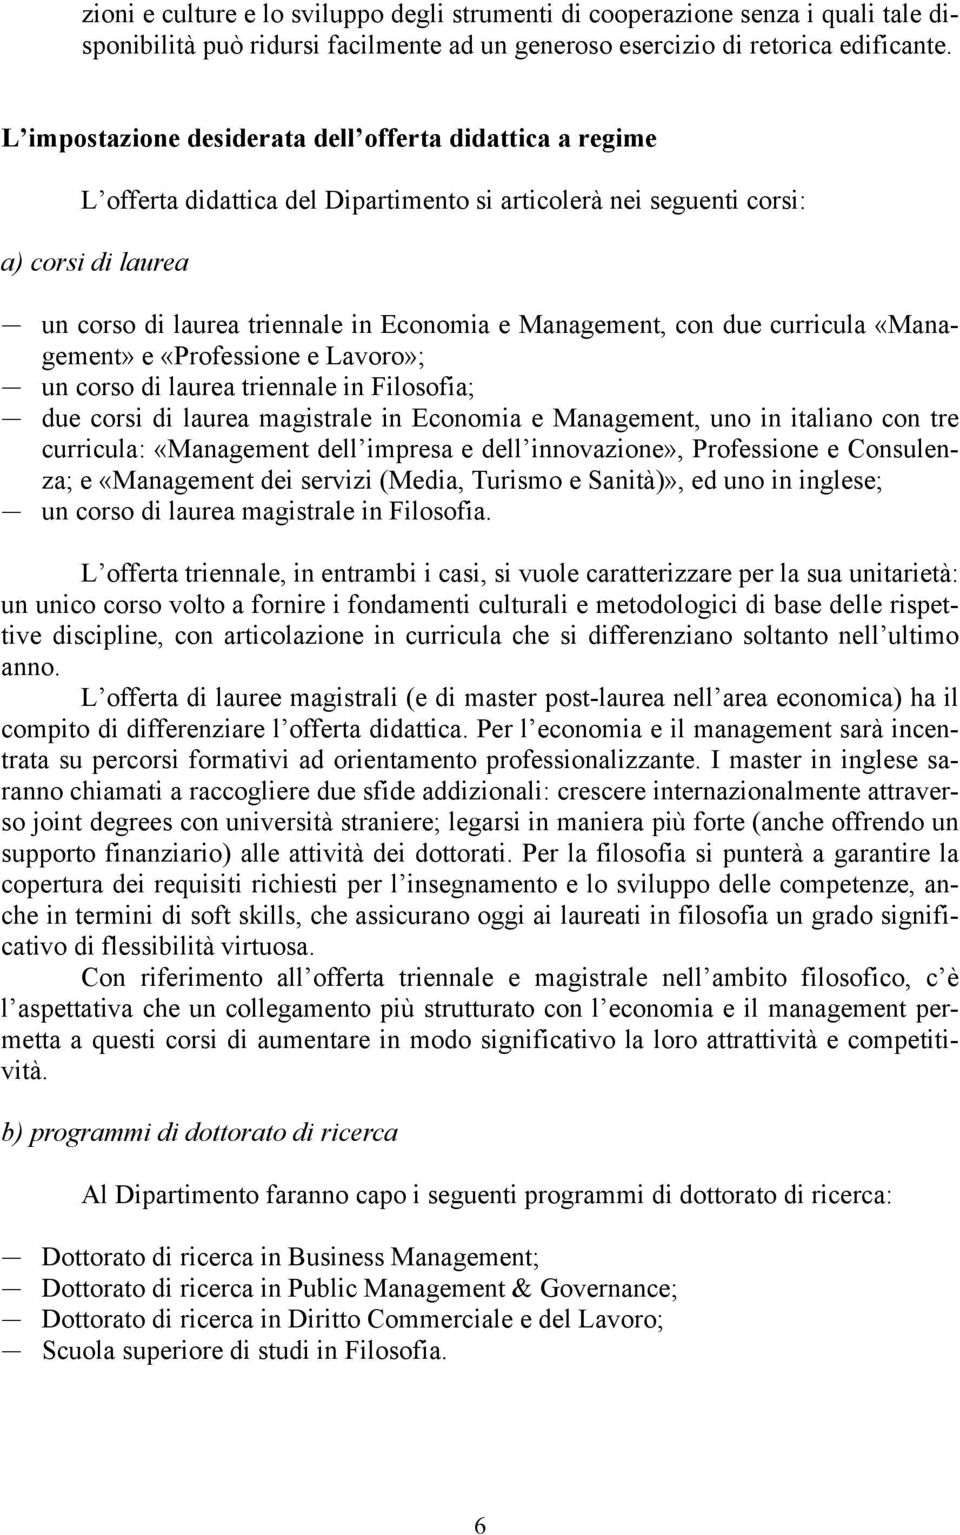 Management, con due curricula «Management» e «Professione e Lavoro»; un corso di laurea triennale in Filosofia; due corsi di laurea magistrale in Economia e Management, uno in italiano con tre